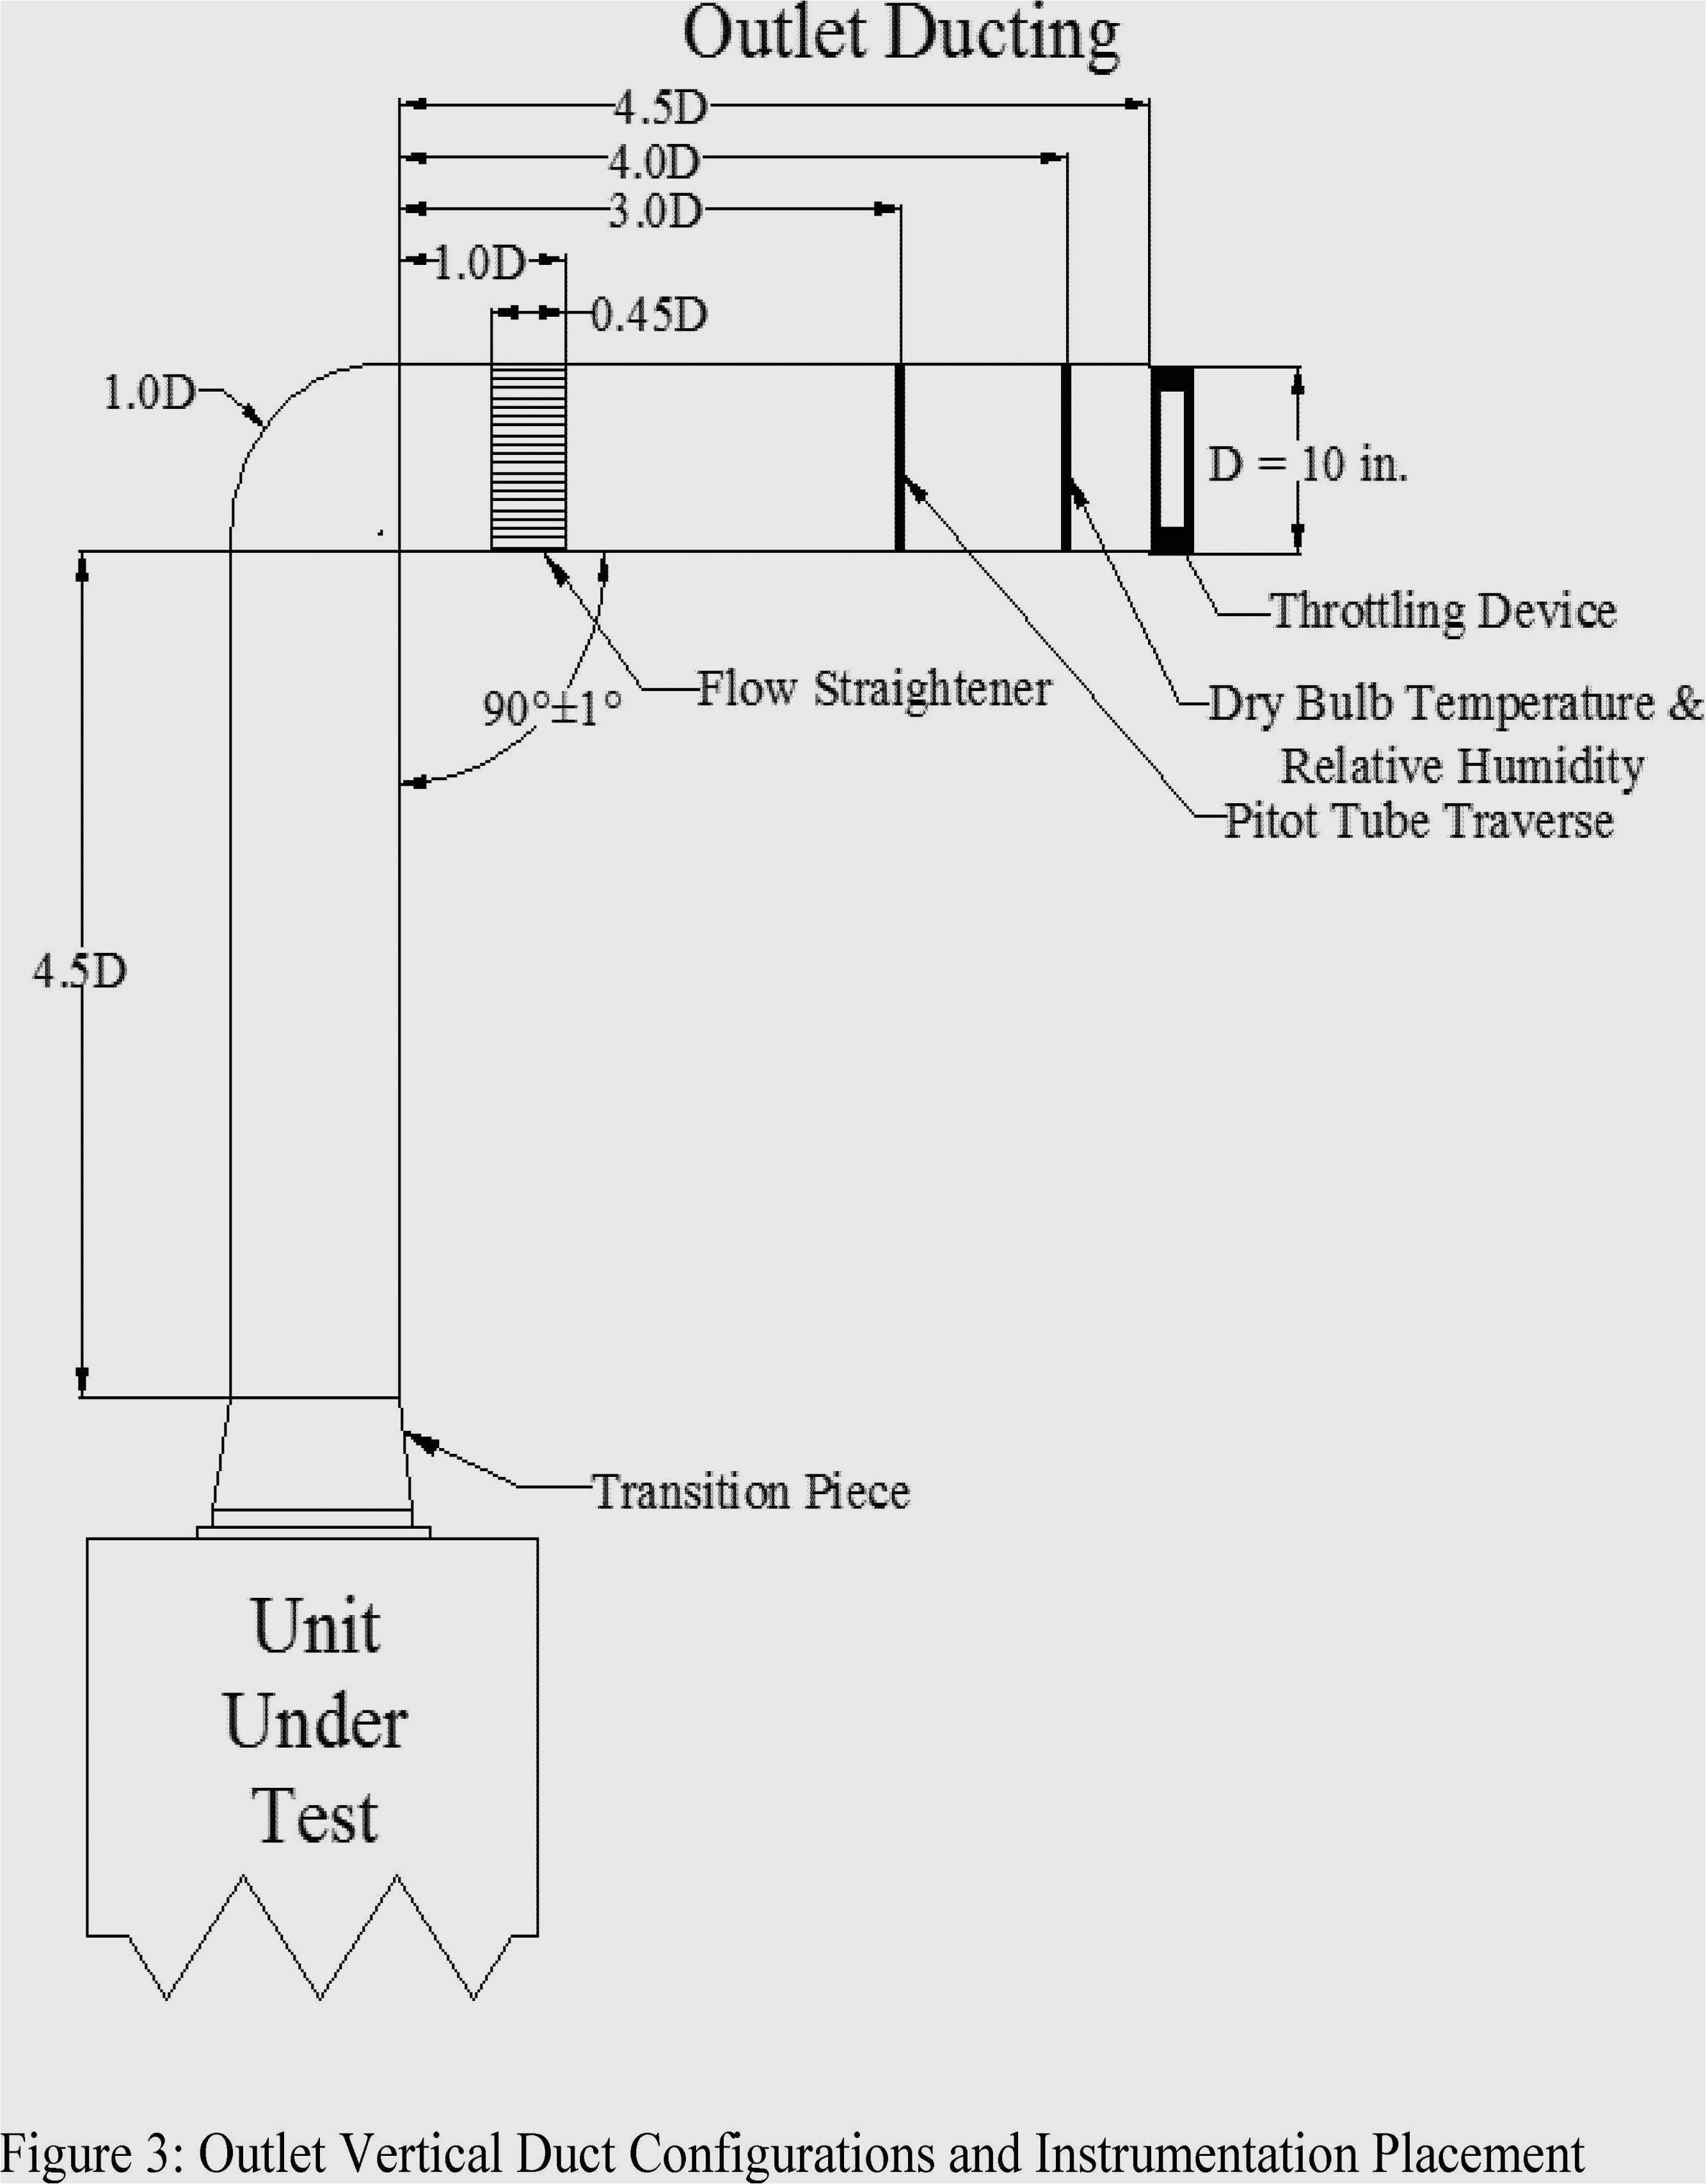 visio electrical shapes wire diagram shapes line circuit amp wiring diagram e280a2 of visio electrical shapes jpg